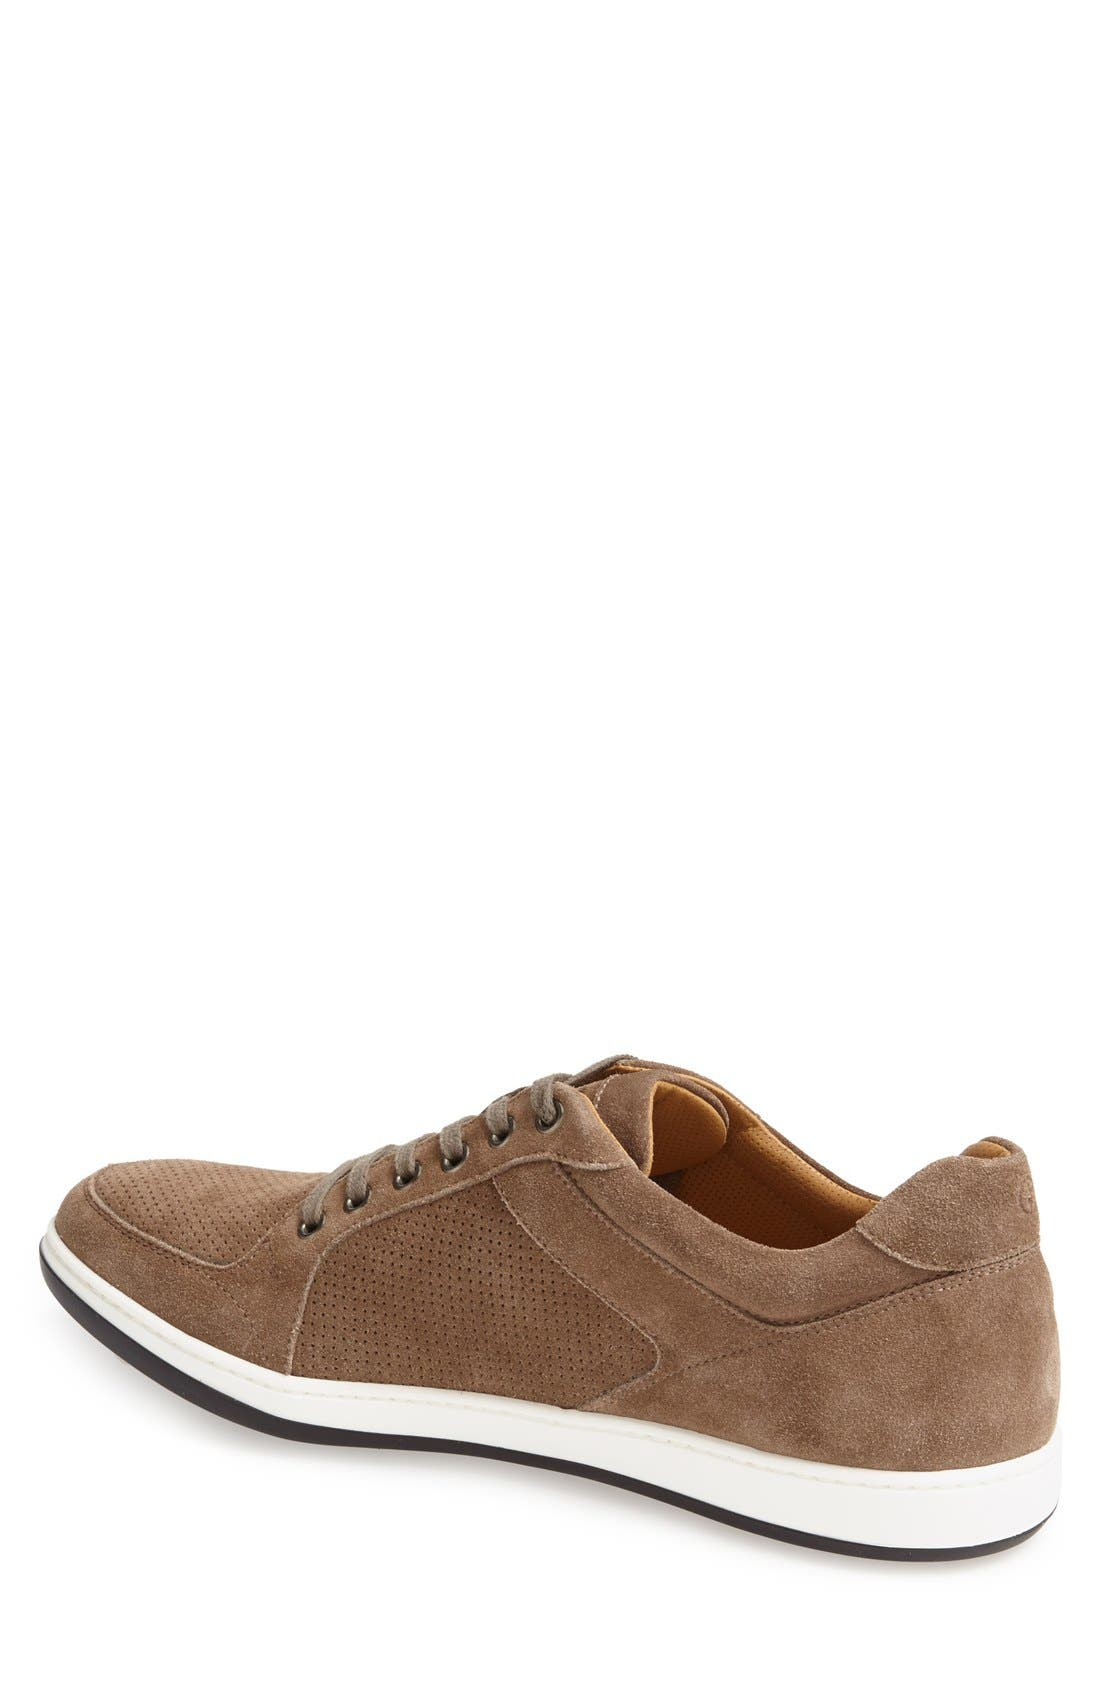 Perforated Suede Sneaker,                             Alternate thumbnail 4, color,                             260